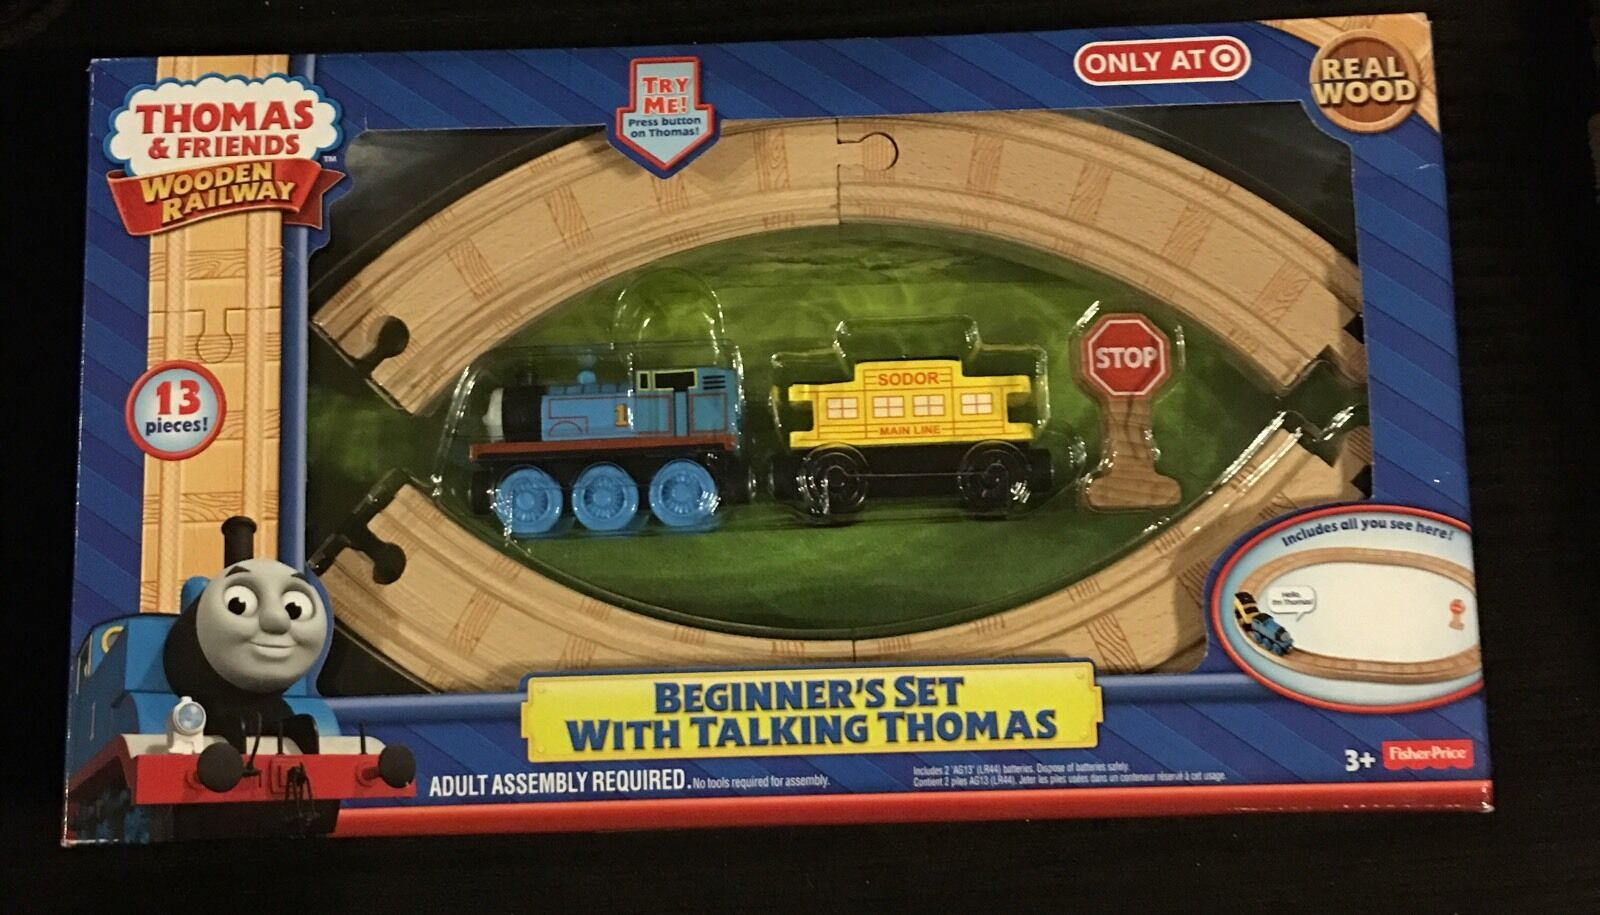 Thomas and Friends Wooden Railway Beginners Set With Talking Thomas